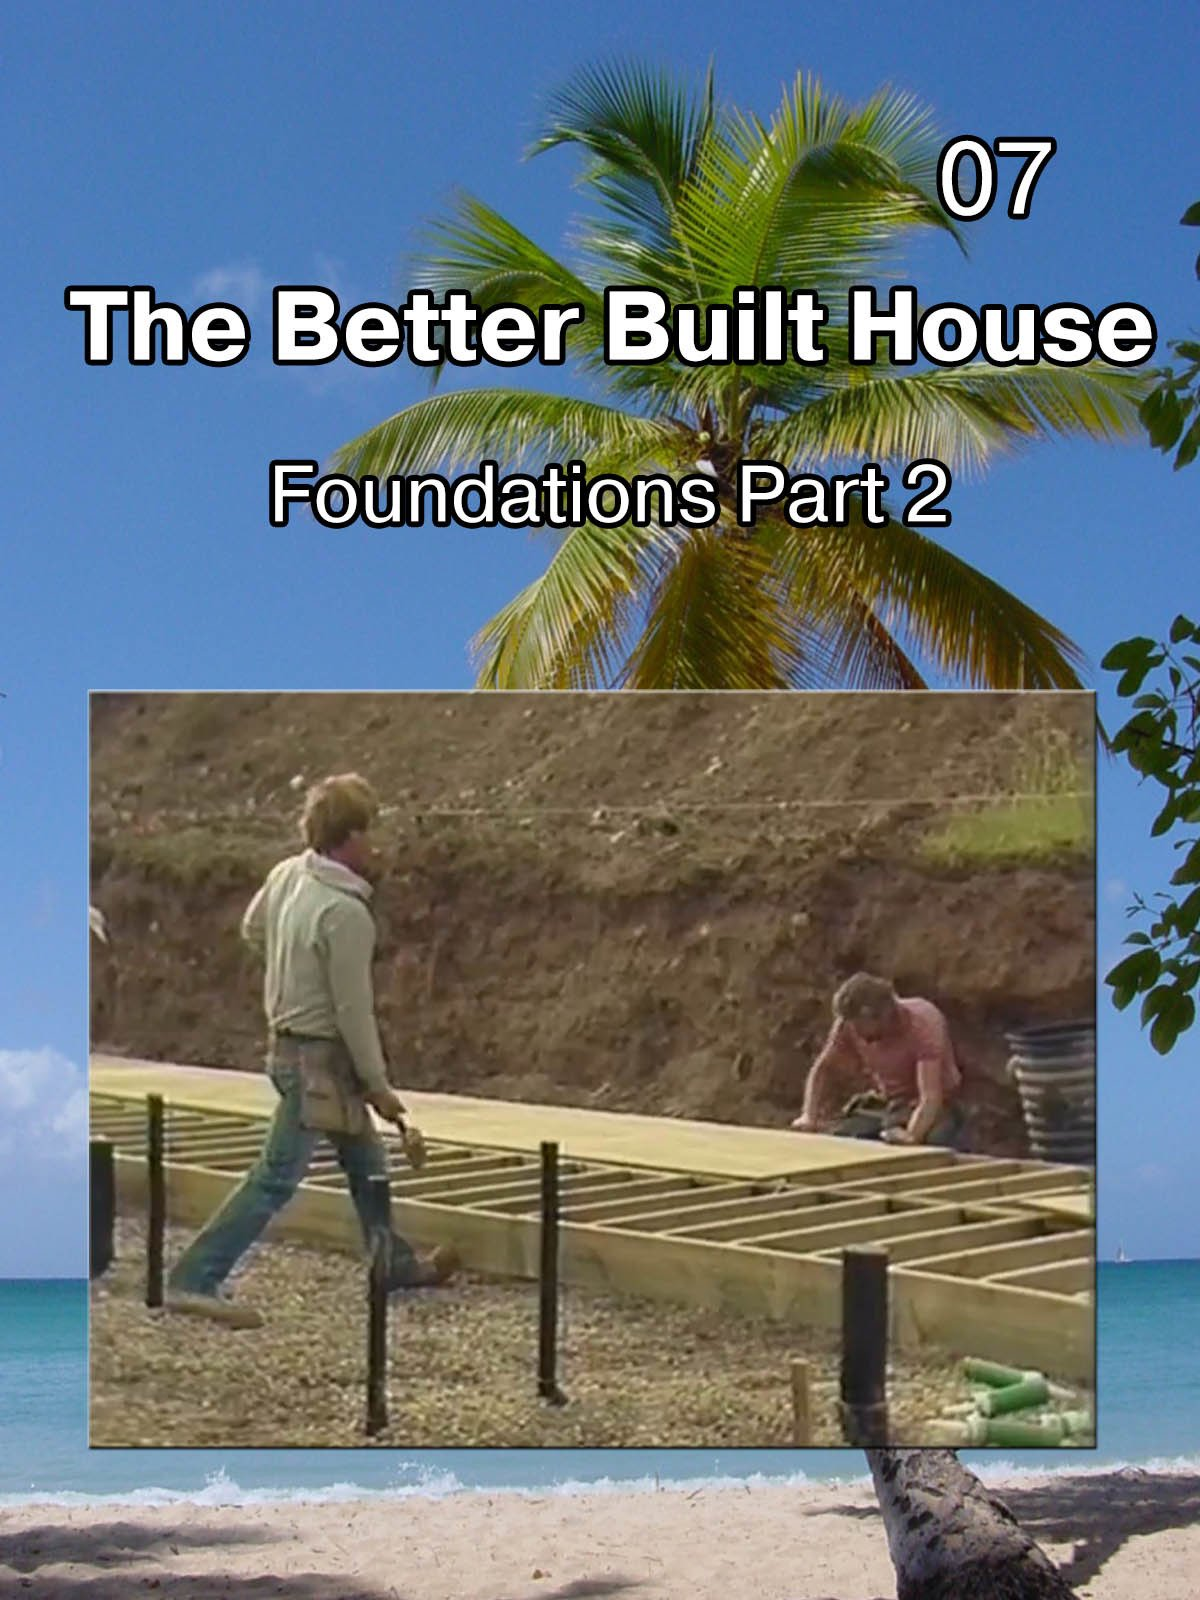 The Better Built House 07 Foundations (Part 2) on Amazon Prime Instant Video UK